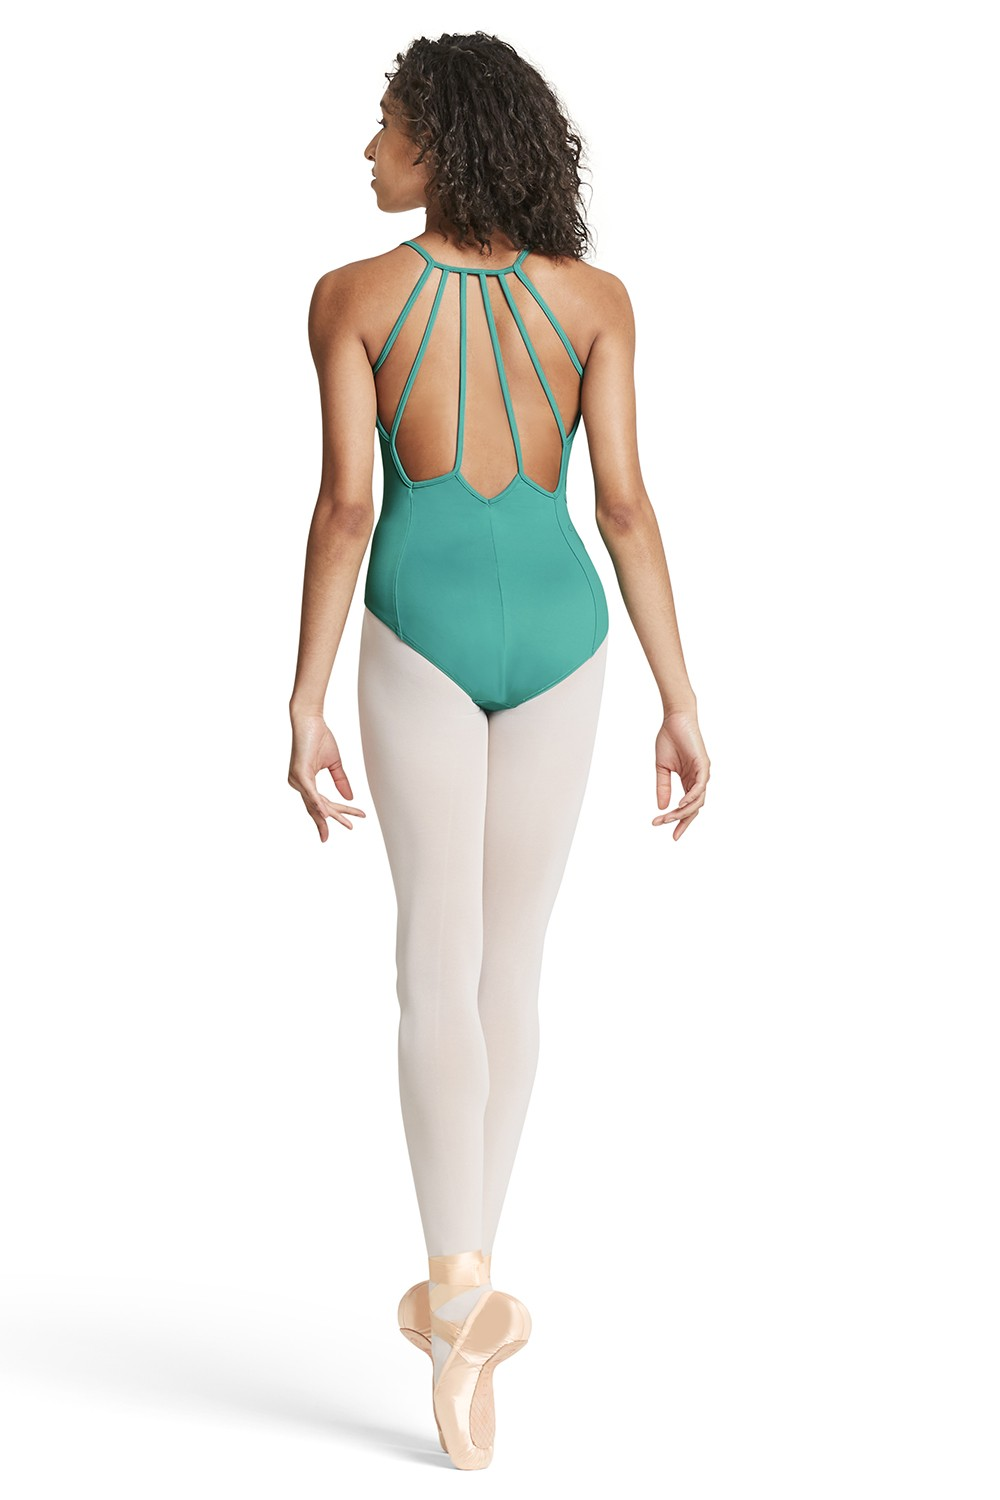 Strap Back Camisole Leotard Women's Dance Leotards